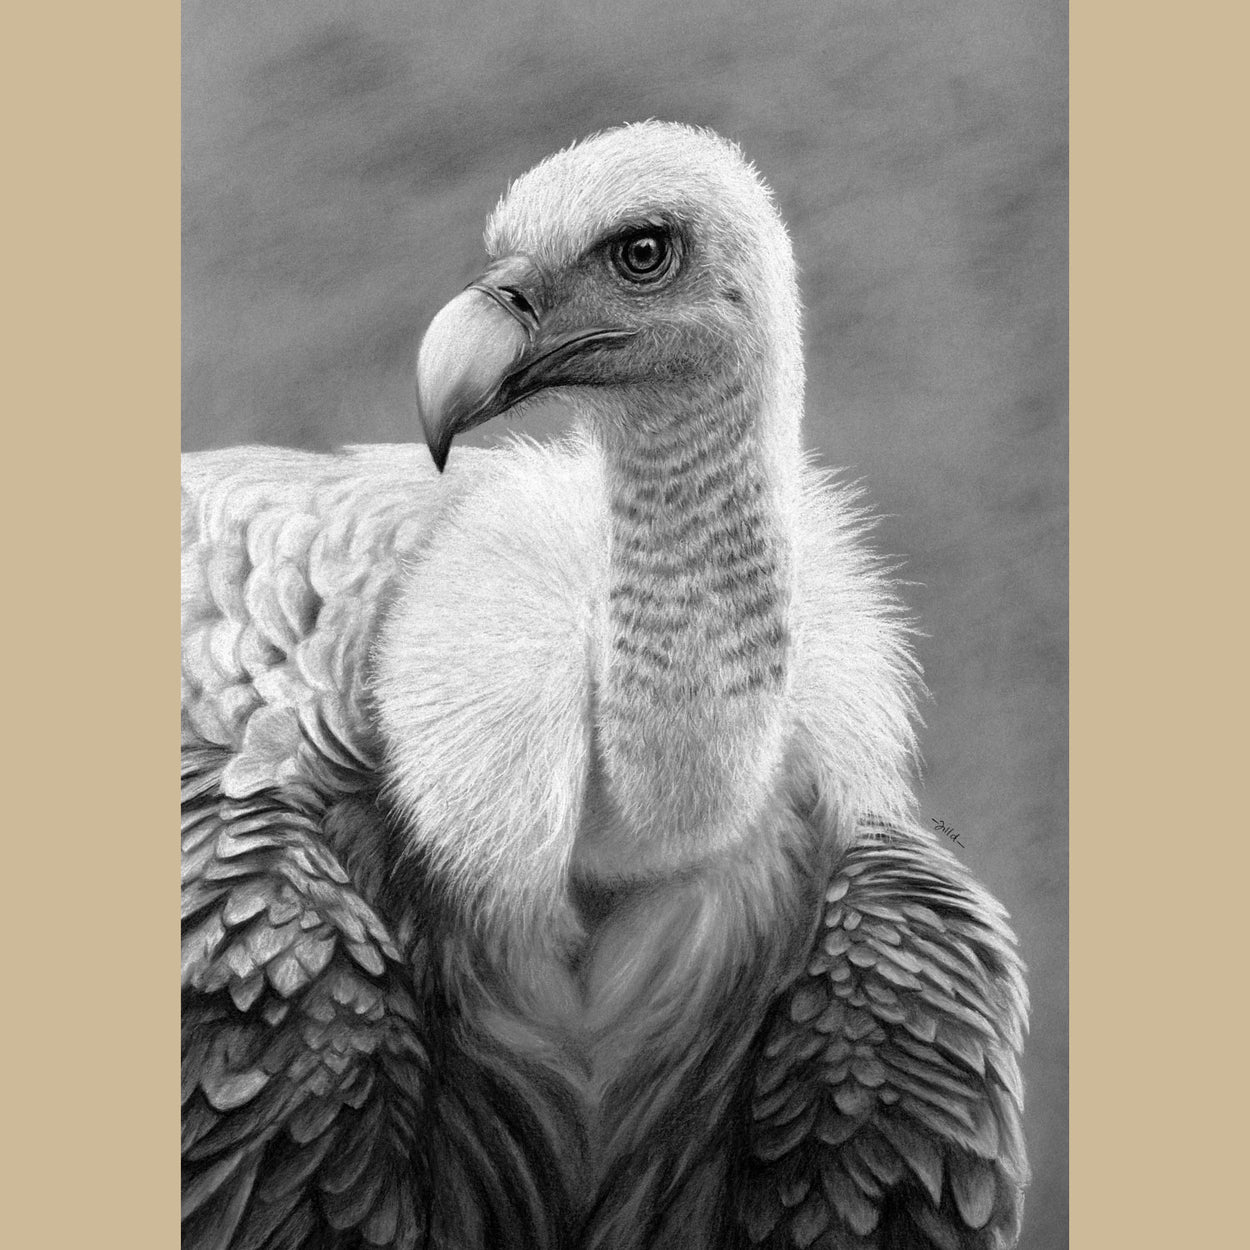 Griffon Vulture Drawing - Gyps Fulvus - The Thriving Wild - Jill Dimond